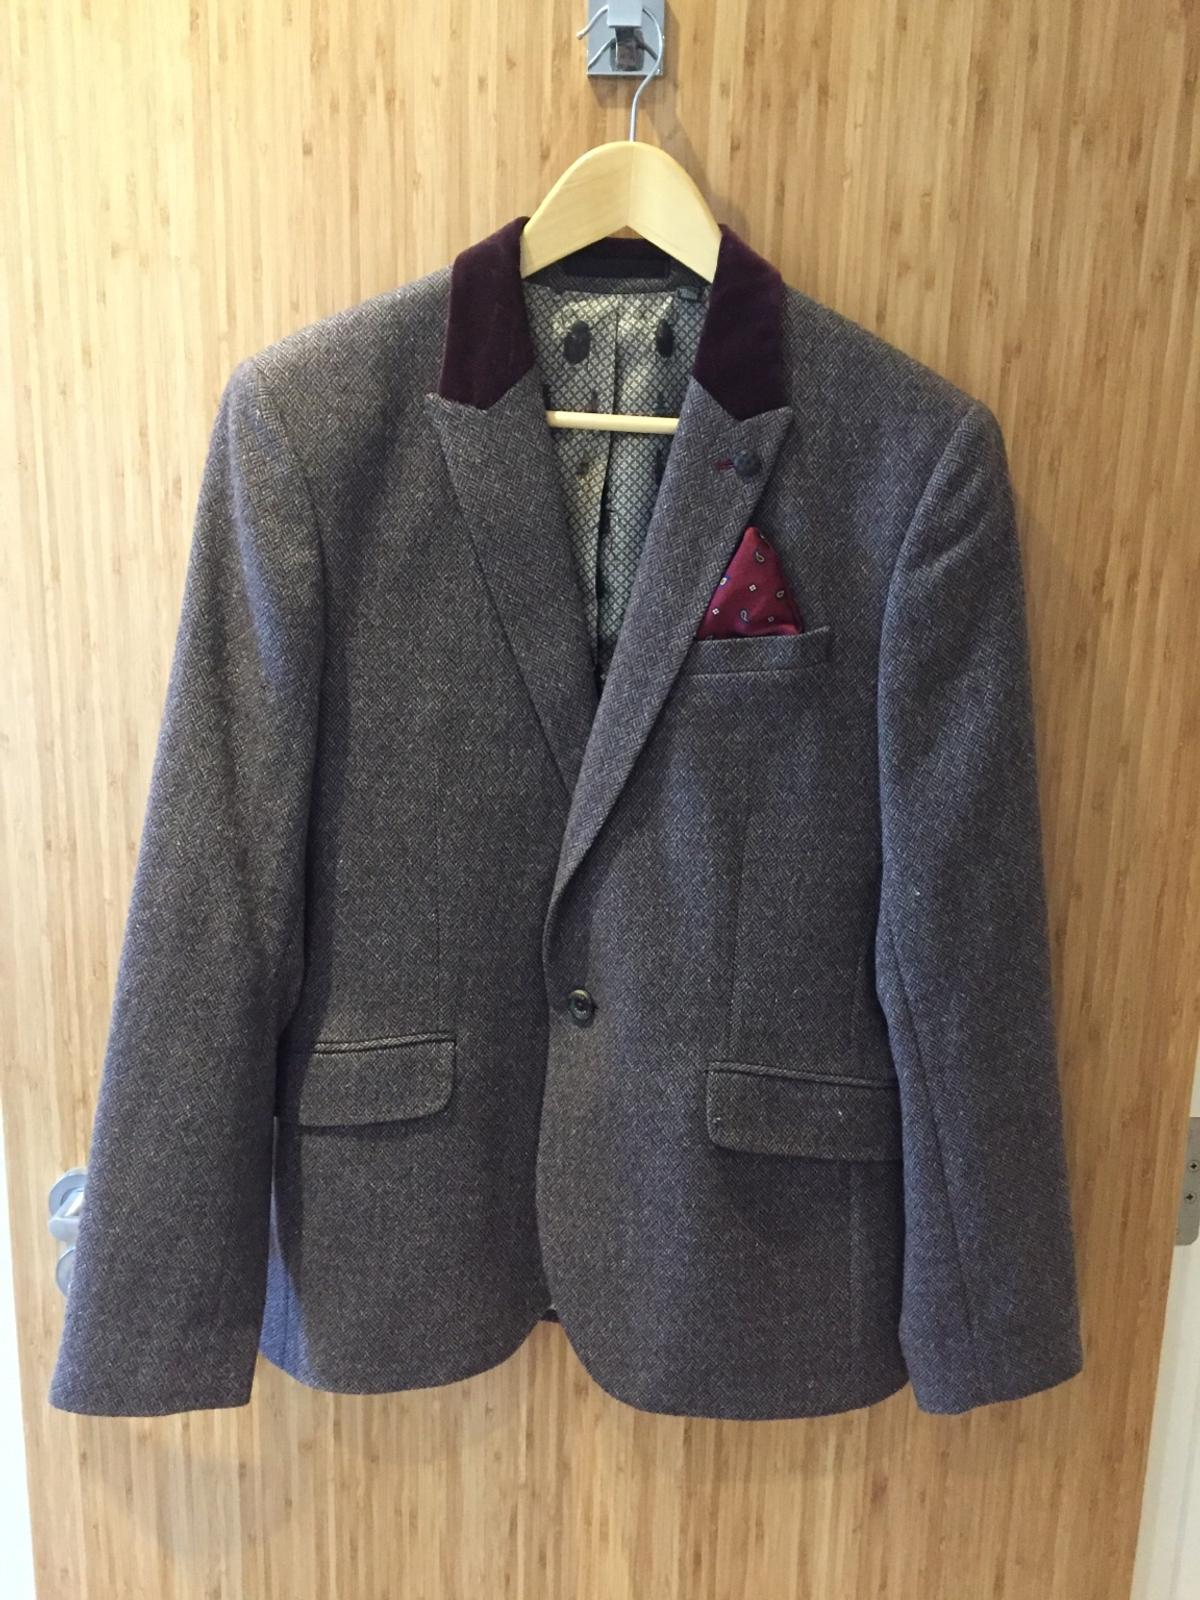 Brown wool men's blazer by Ted Baker. With deep red velvet collar and silk pocked square detail. Size 3. Good condition